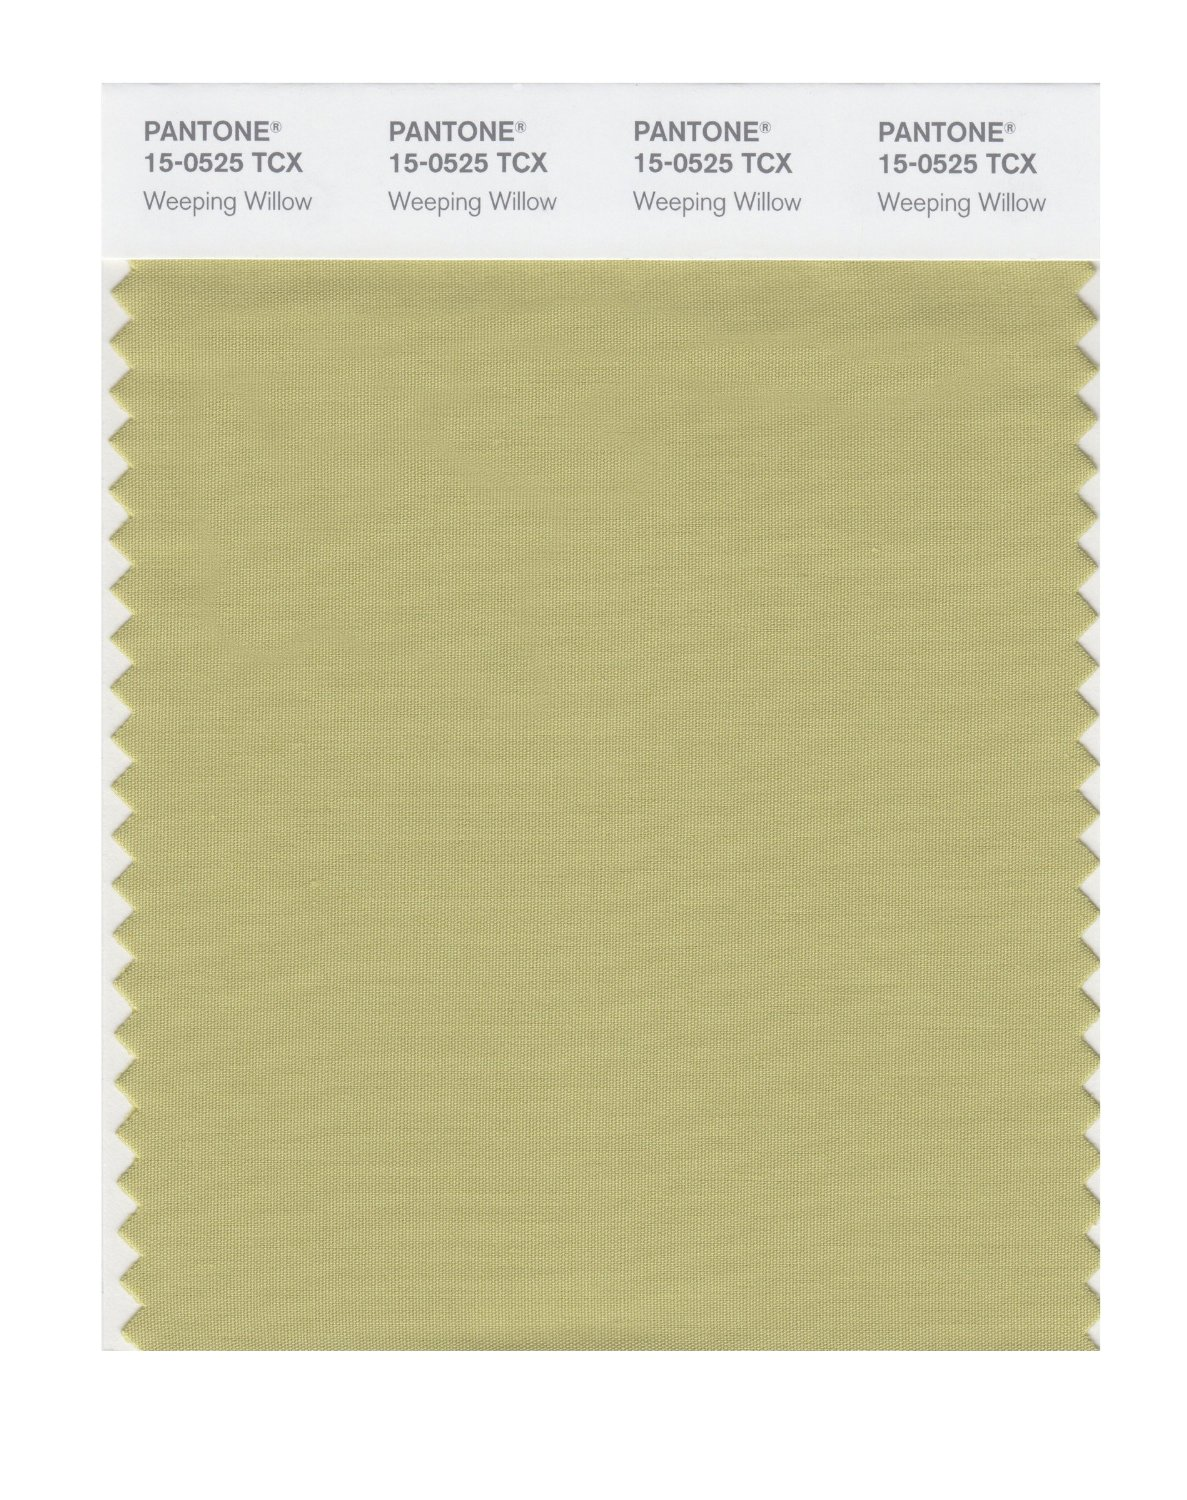 Pantone Smart Swatch 15-0525 Weeping Willow